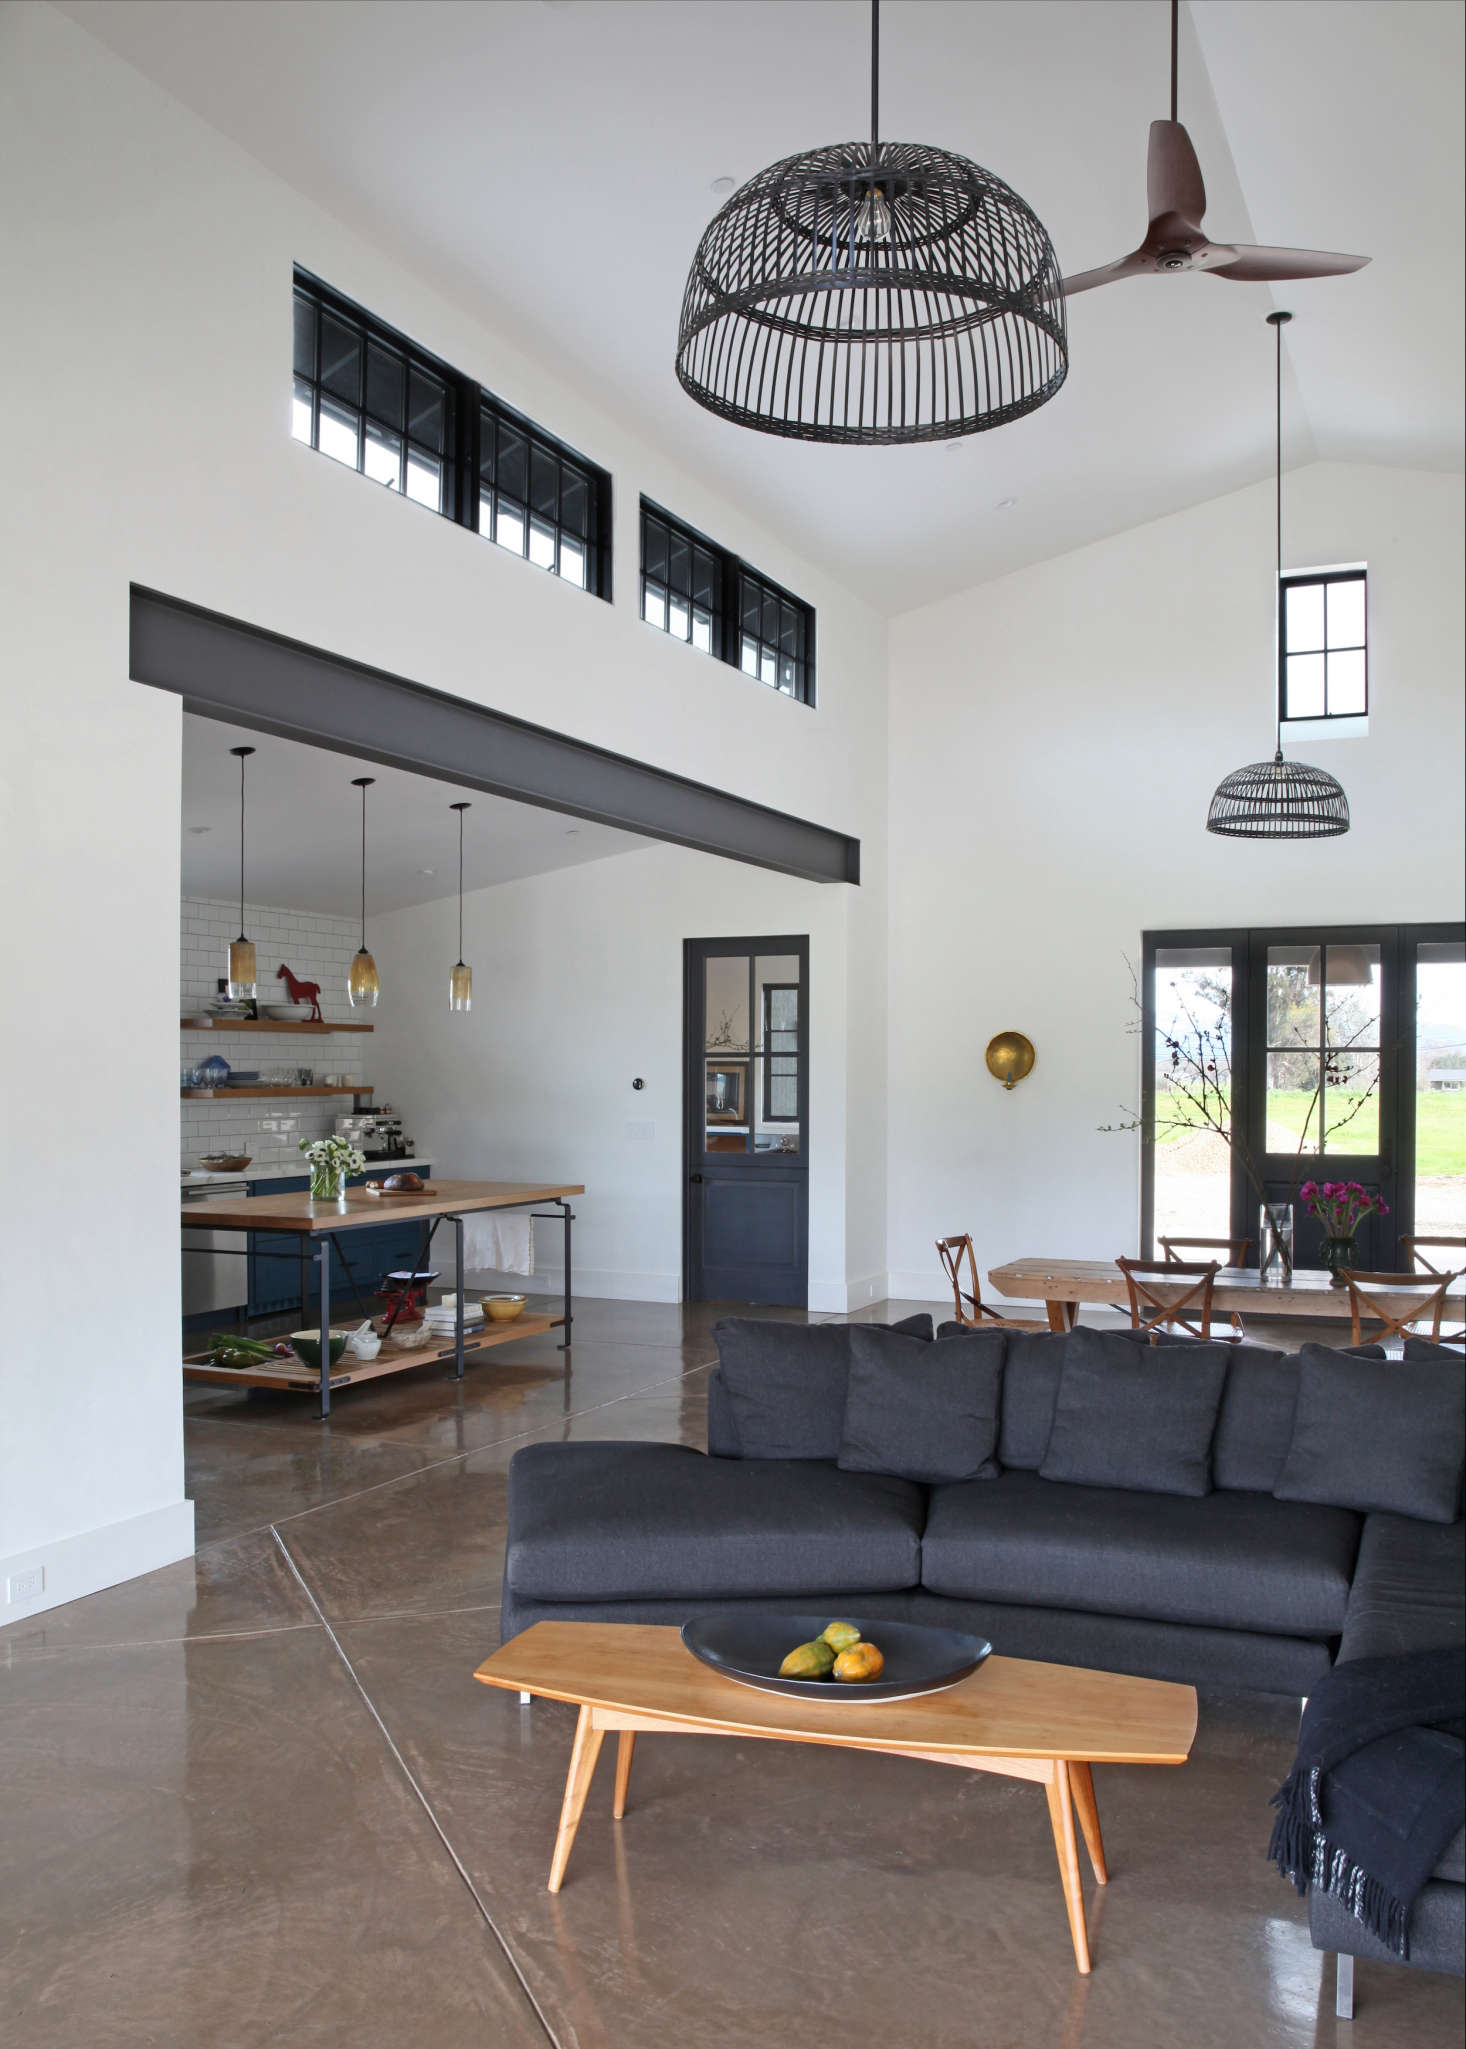 The two black basketweave pendant lights above the living and dining are from Ikea, modified with the power cord installed inside a down rod to minimize movement. The coffee table is from Room & Board.